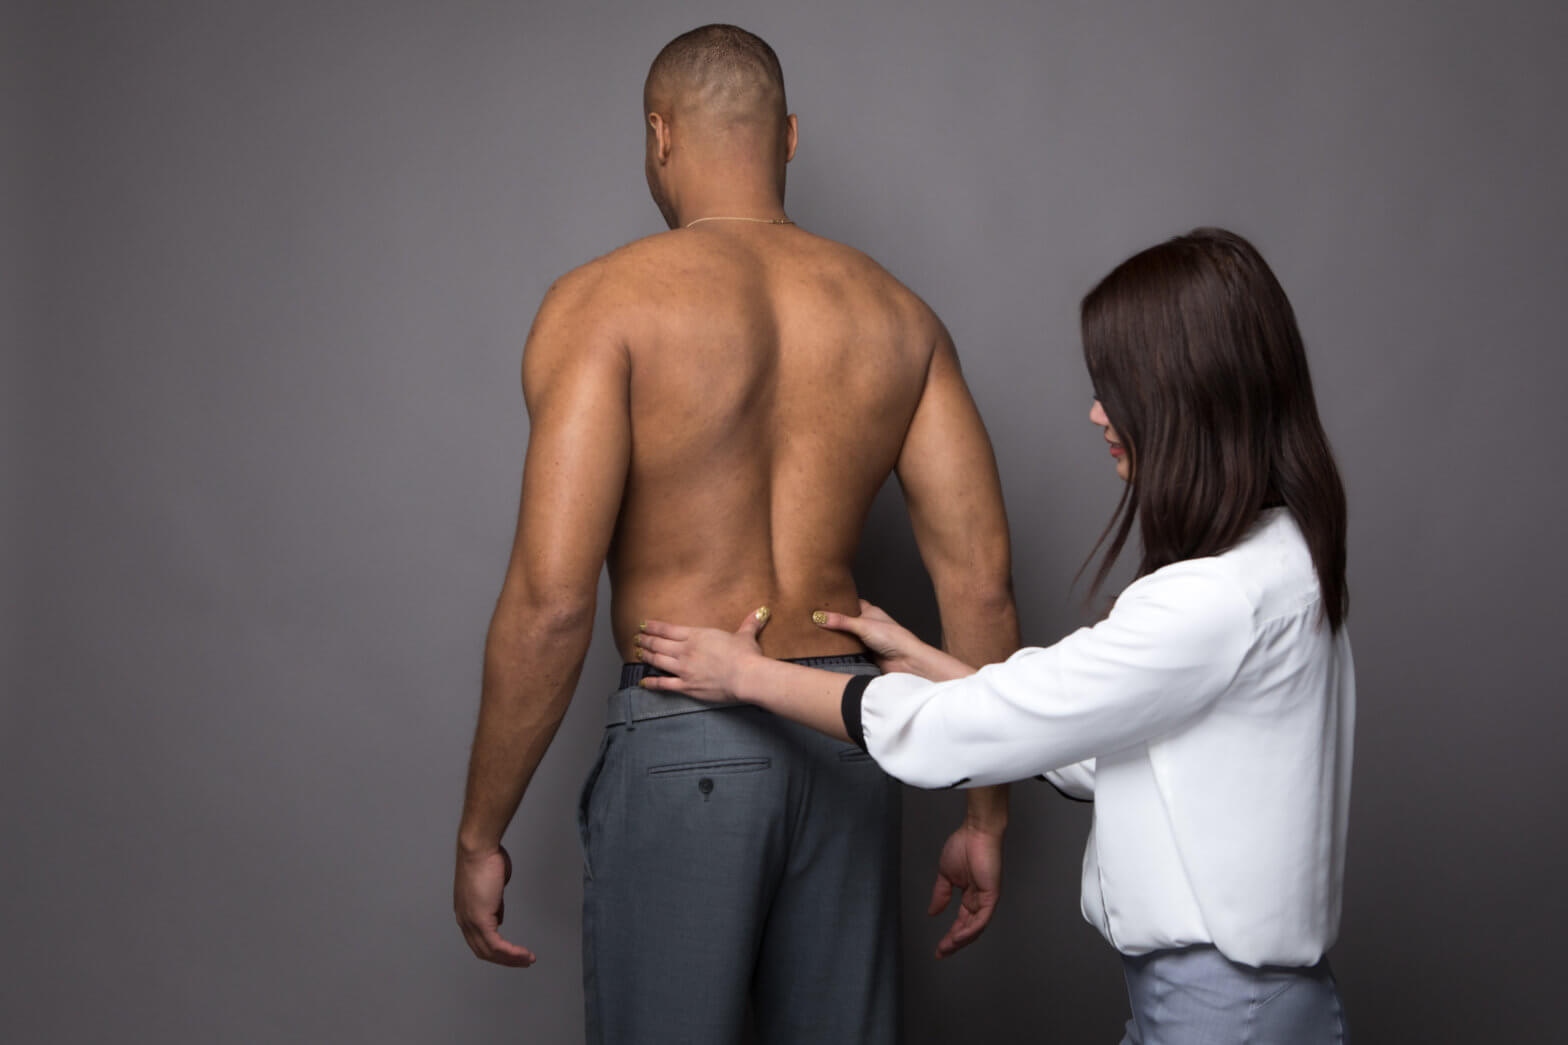 Physical therapists Evanston IL